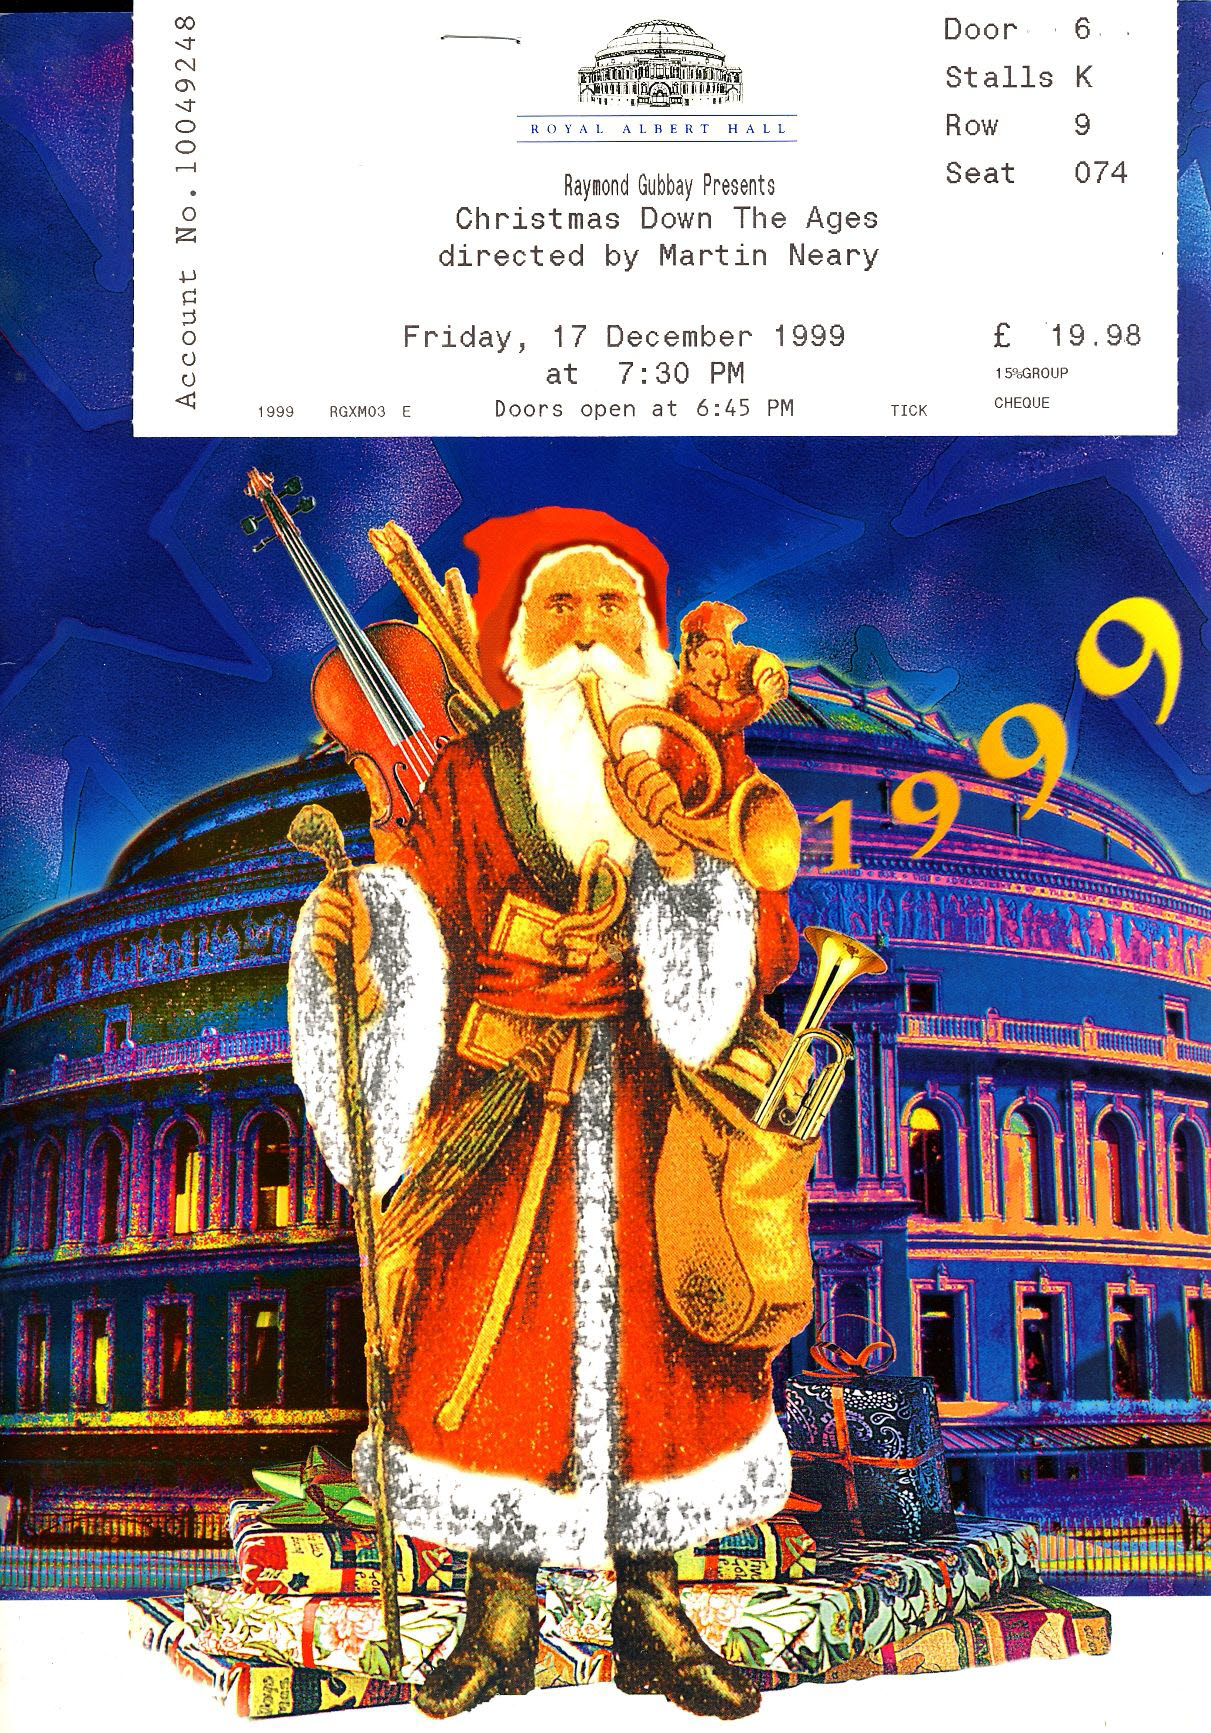 1999 Royal Albert Hall CHRISTMAS Theatre Programme with ticket stub refb101177 Pre-owned Programme in Very Good Condition with ticket stub. Measures approx 21cm x 29.5cm